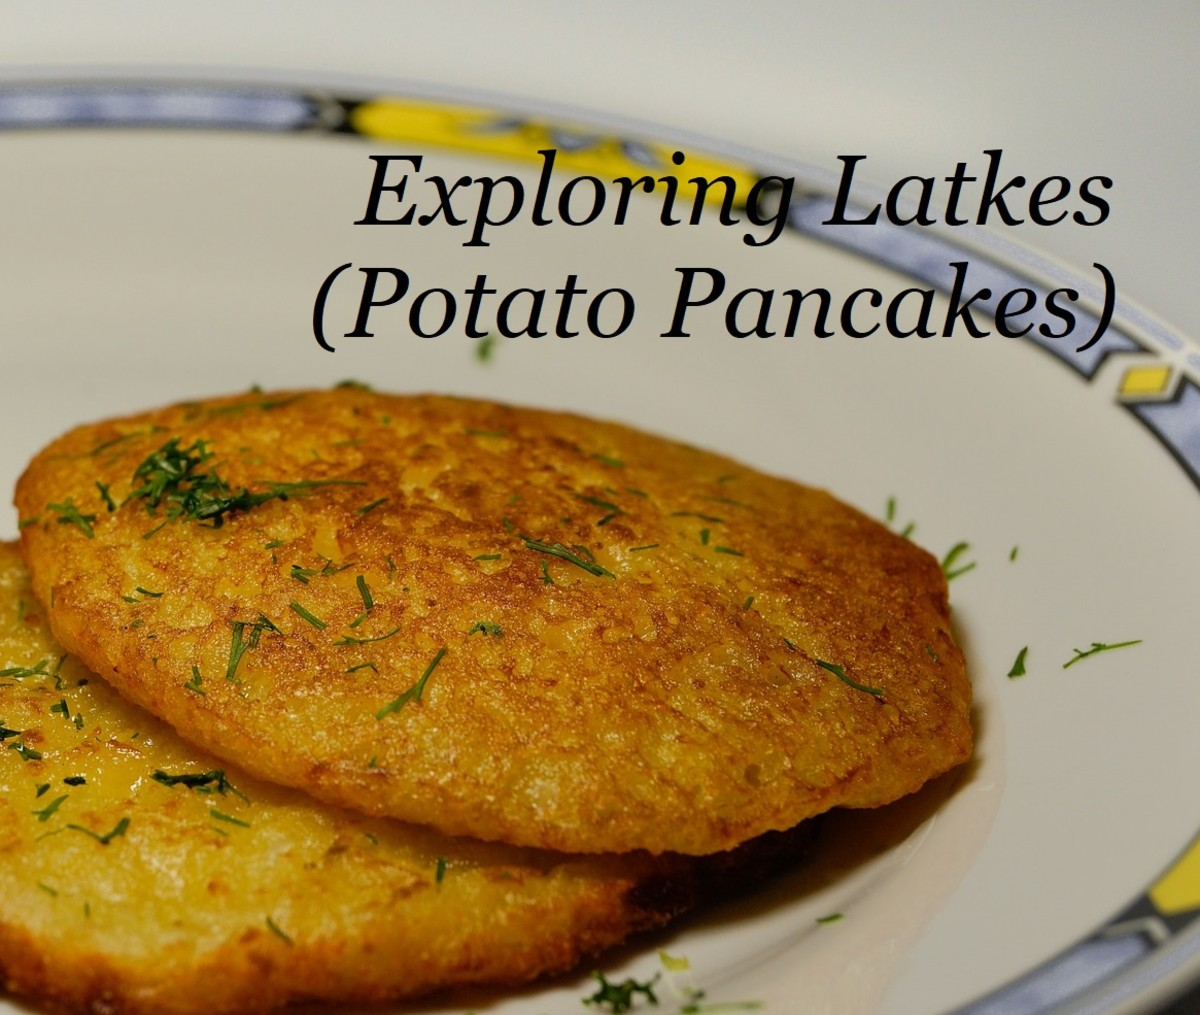 Exploring Latkes (Potato Pancakes)